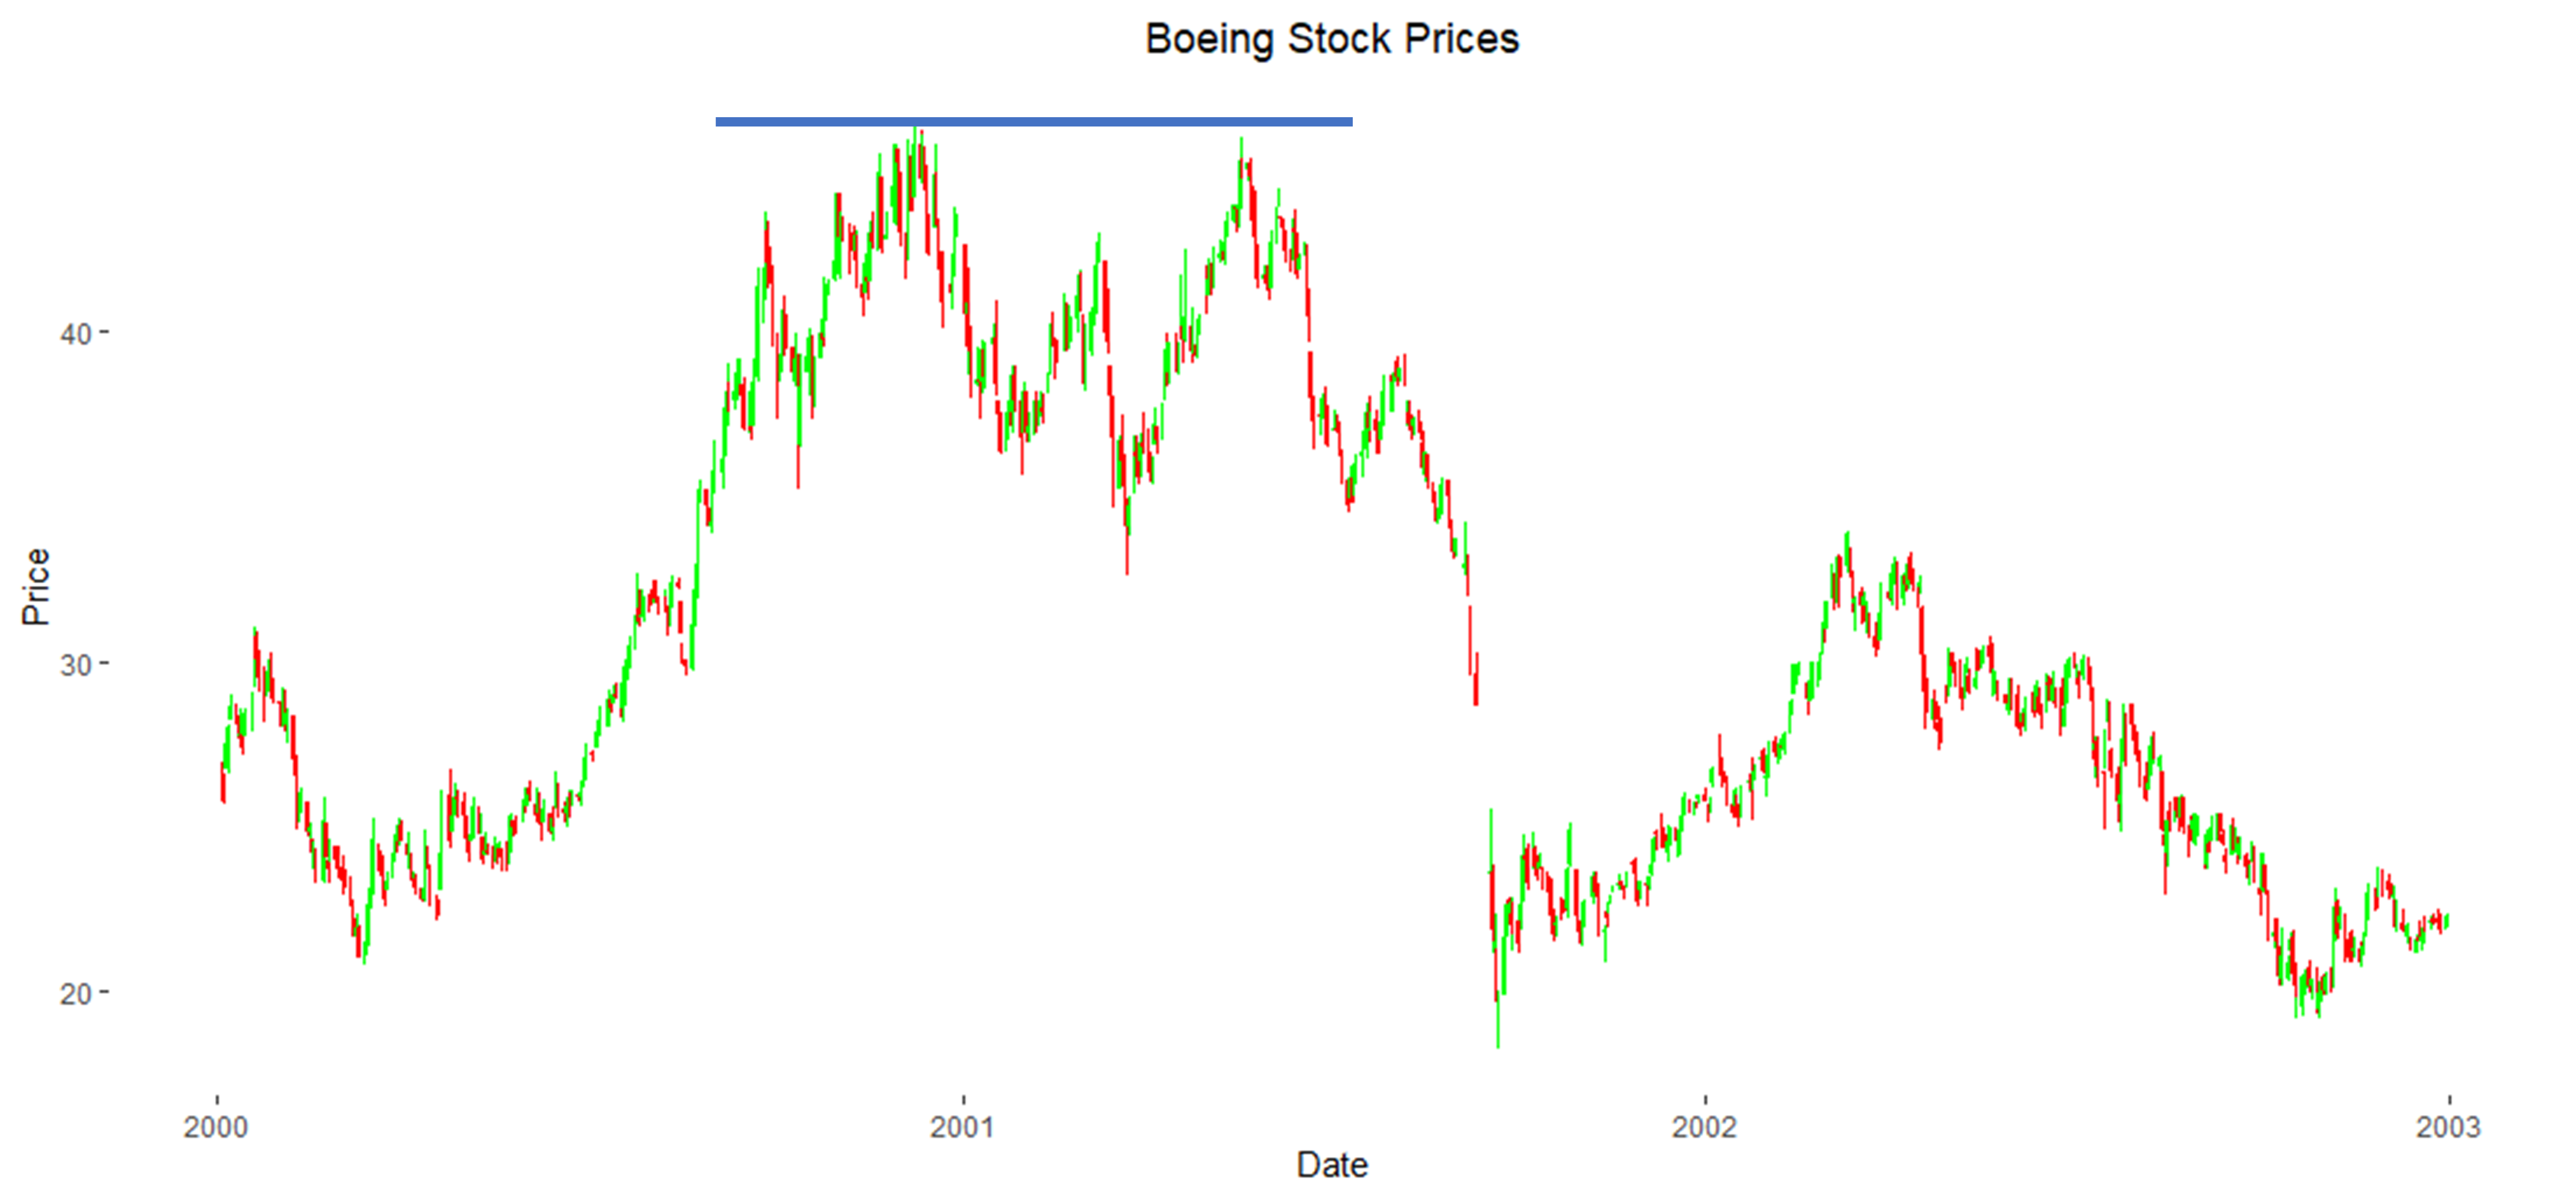 Boeing Stock Prices with Resistance Level